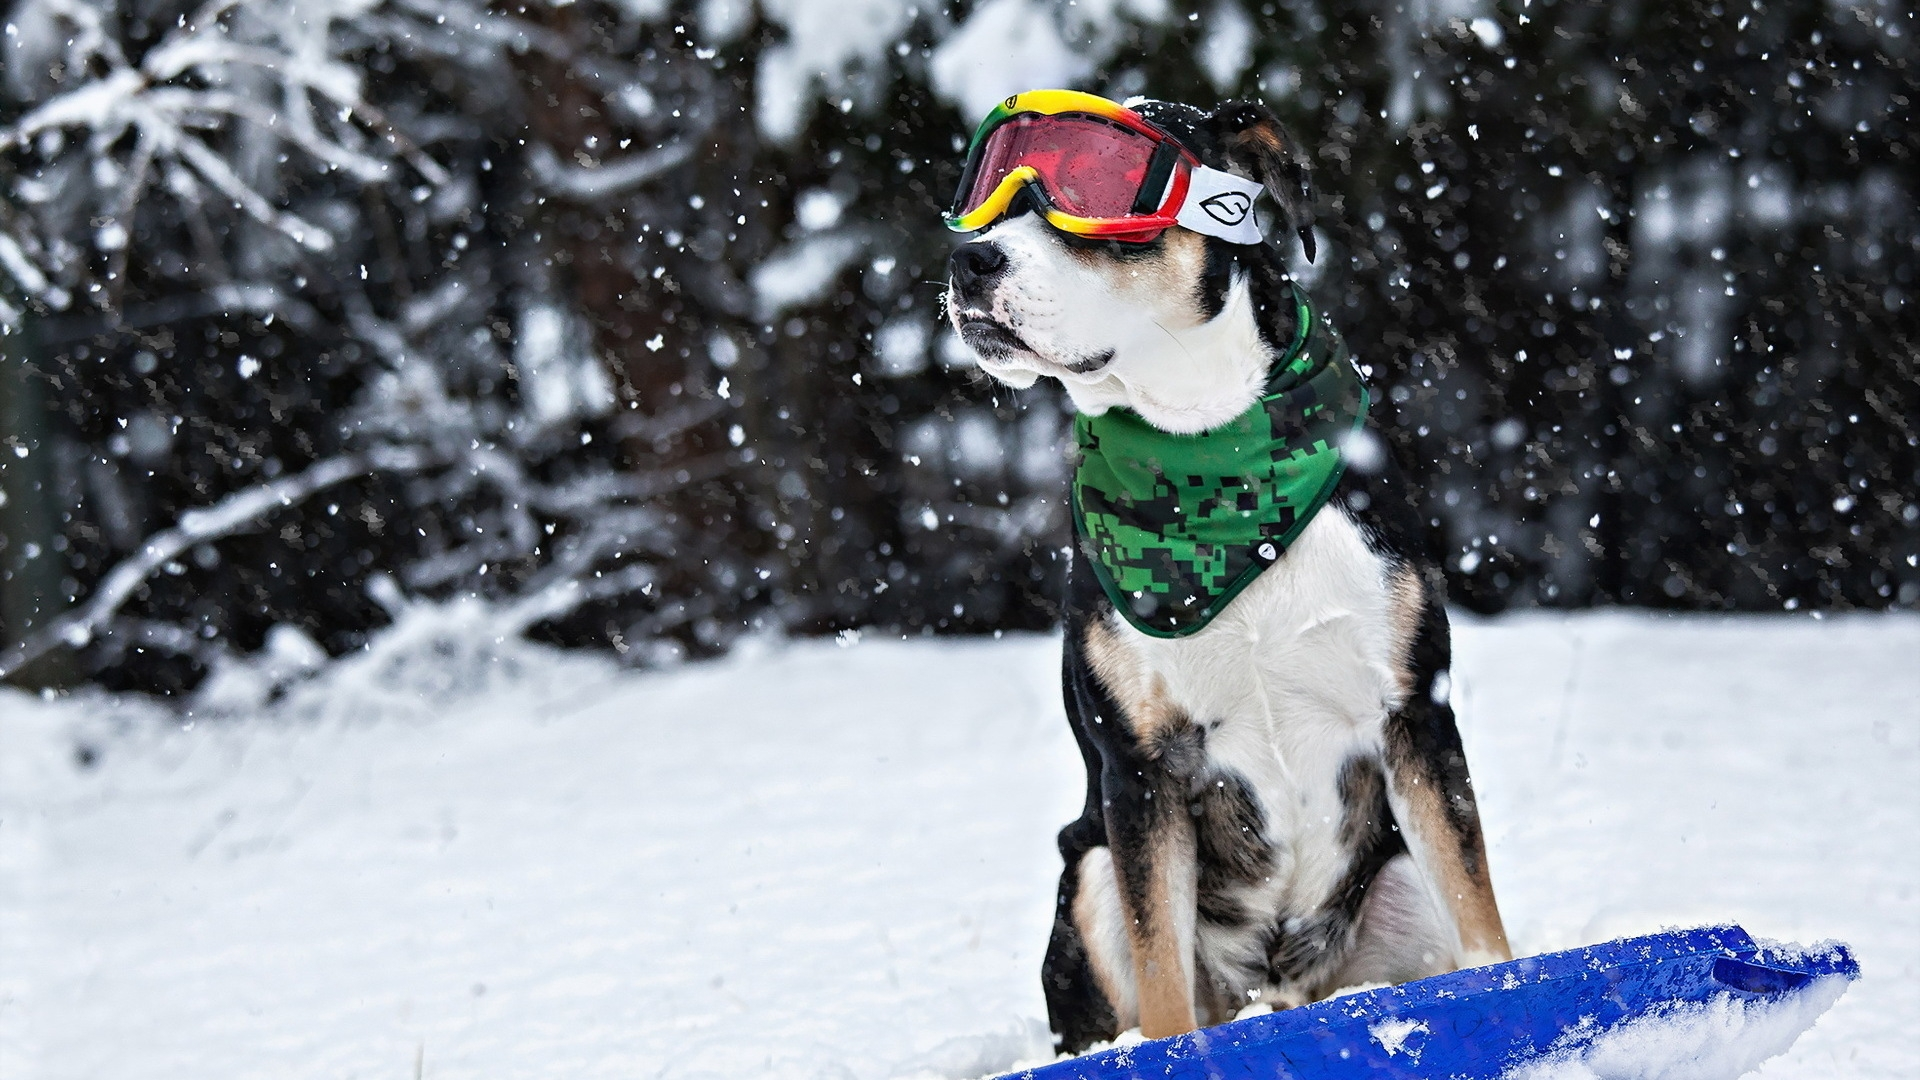 Funny Dog With Ski Goggles And Scarf Cool Dog